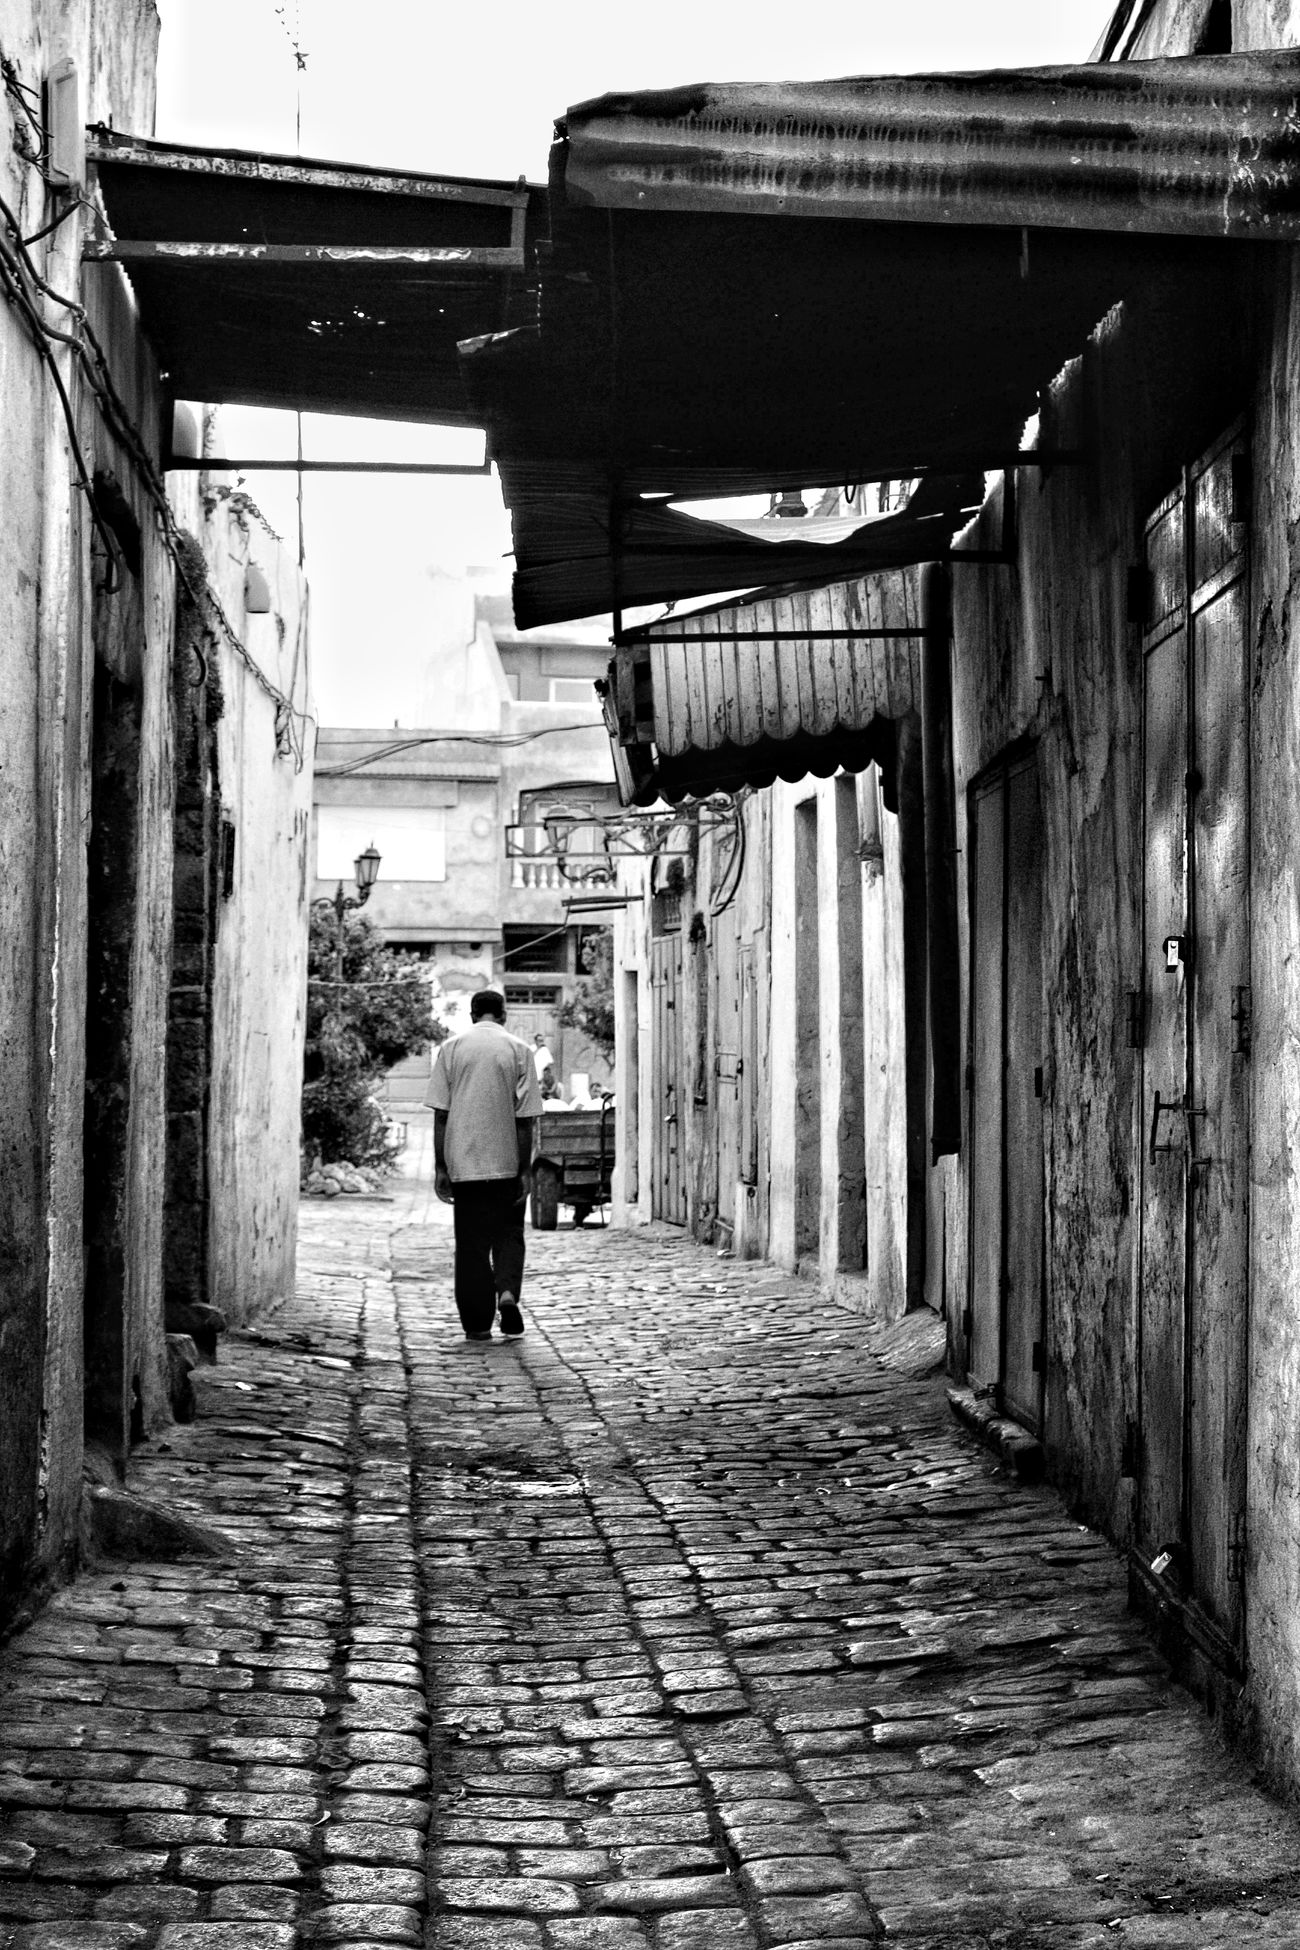 Streetphotography Street Life Blackandwhite Streetphotography_bw Tunisia Shootermag AMPt - Street Blackandwhite Photography Street Photography Bizerte Streetphoto_bw